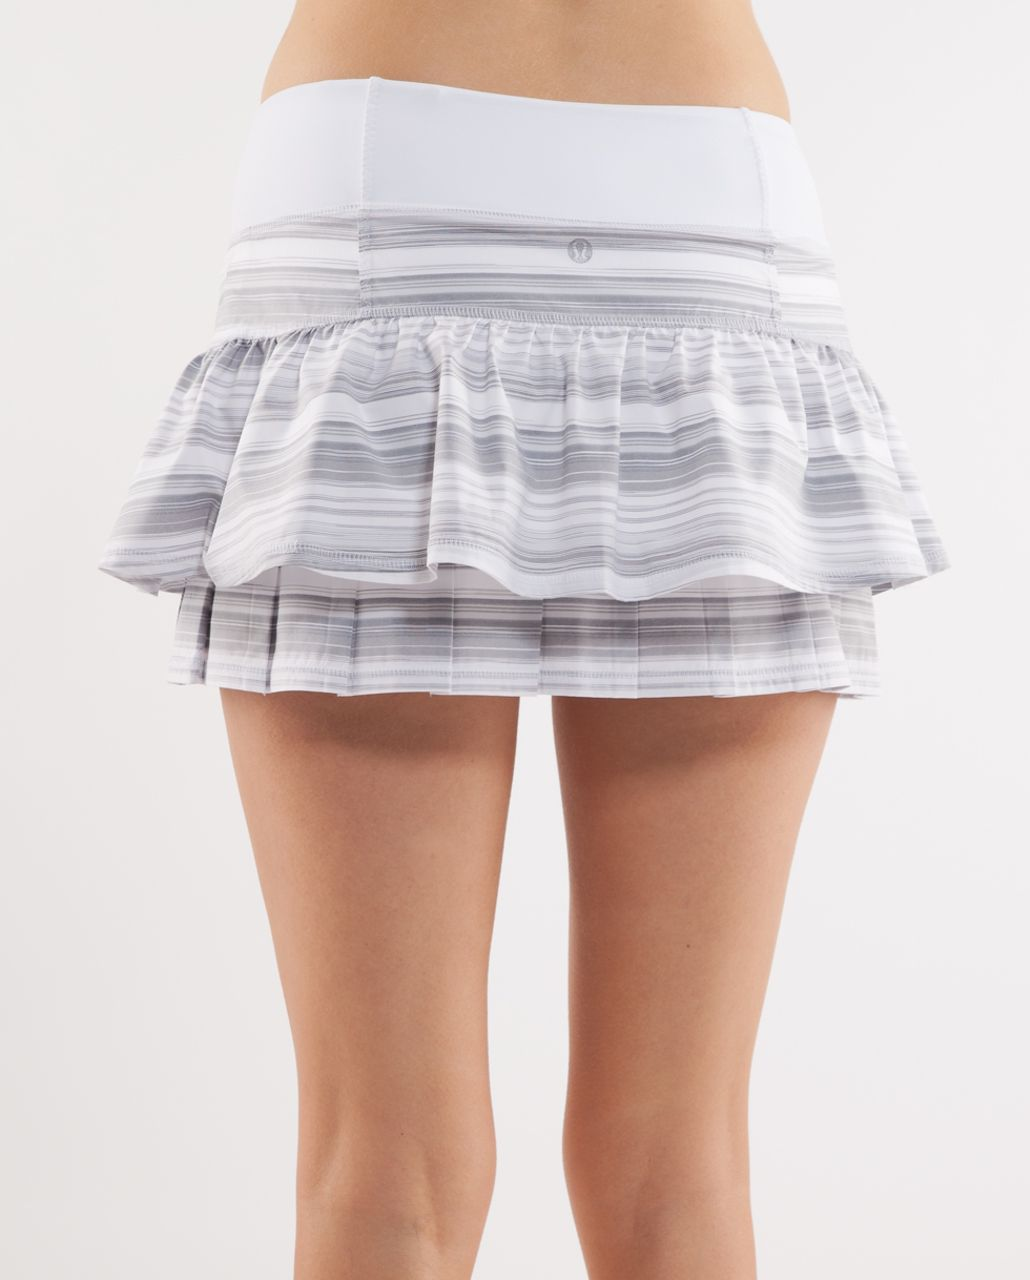 Lululemon Run:  Your Heart Out Skirt - White Elevation Stripe /  White